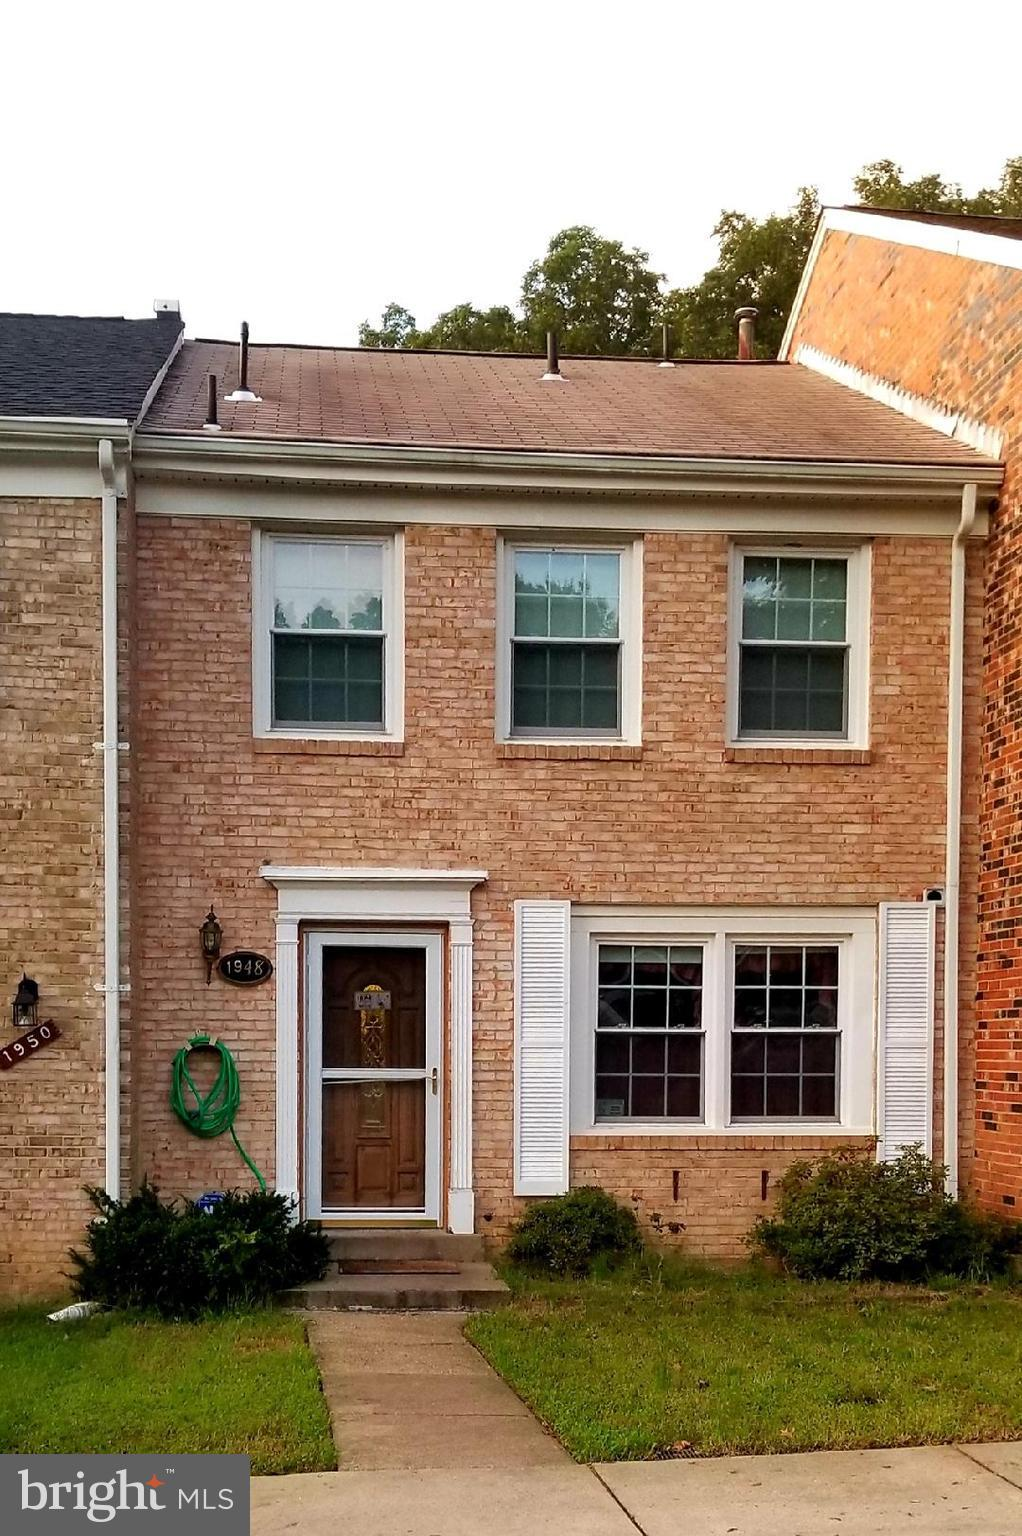 Well kept brick front TH less than 2 mi. from I95, rt.123,close to shopping. Convenient Commuter location! 3 Finished levels. 4 BR, 3 1/2 Baths. Independent walk out Basement to spacious Flagstone, Fenced Patio backing to trees. Hardwood Living Rm, Ceramic Foyer, eat in Kitchen & Dining room.3 BR, 2 full ceramic baths upstairs. 4th BR, 3rd Full Bath & Rec Rm in Basement. 2 assigned parking spaces.